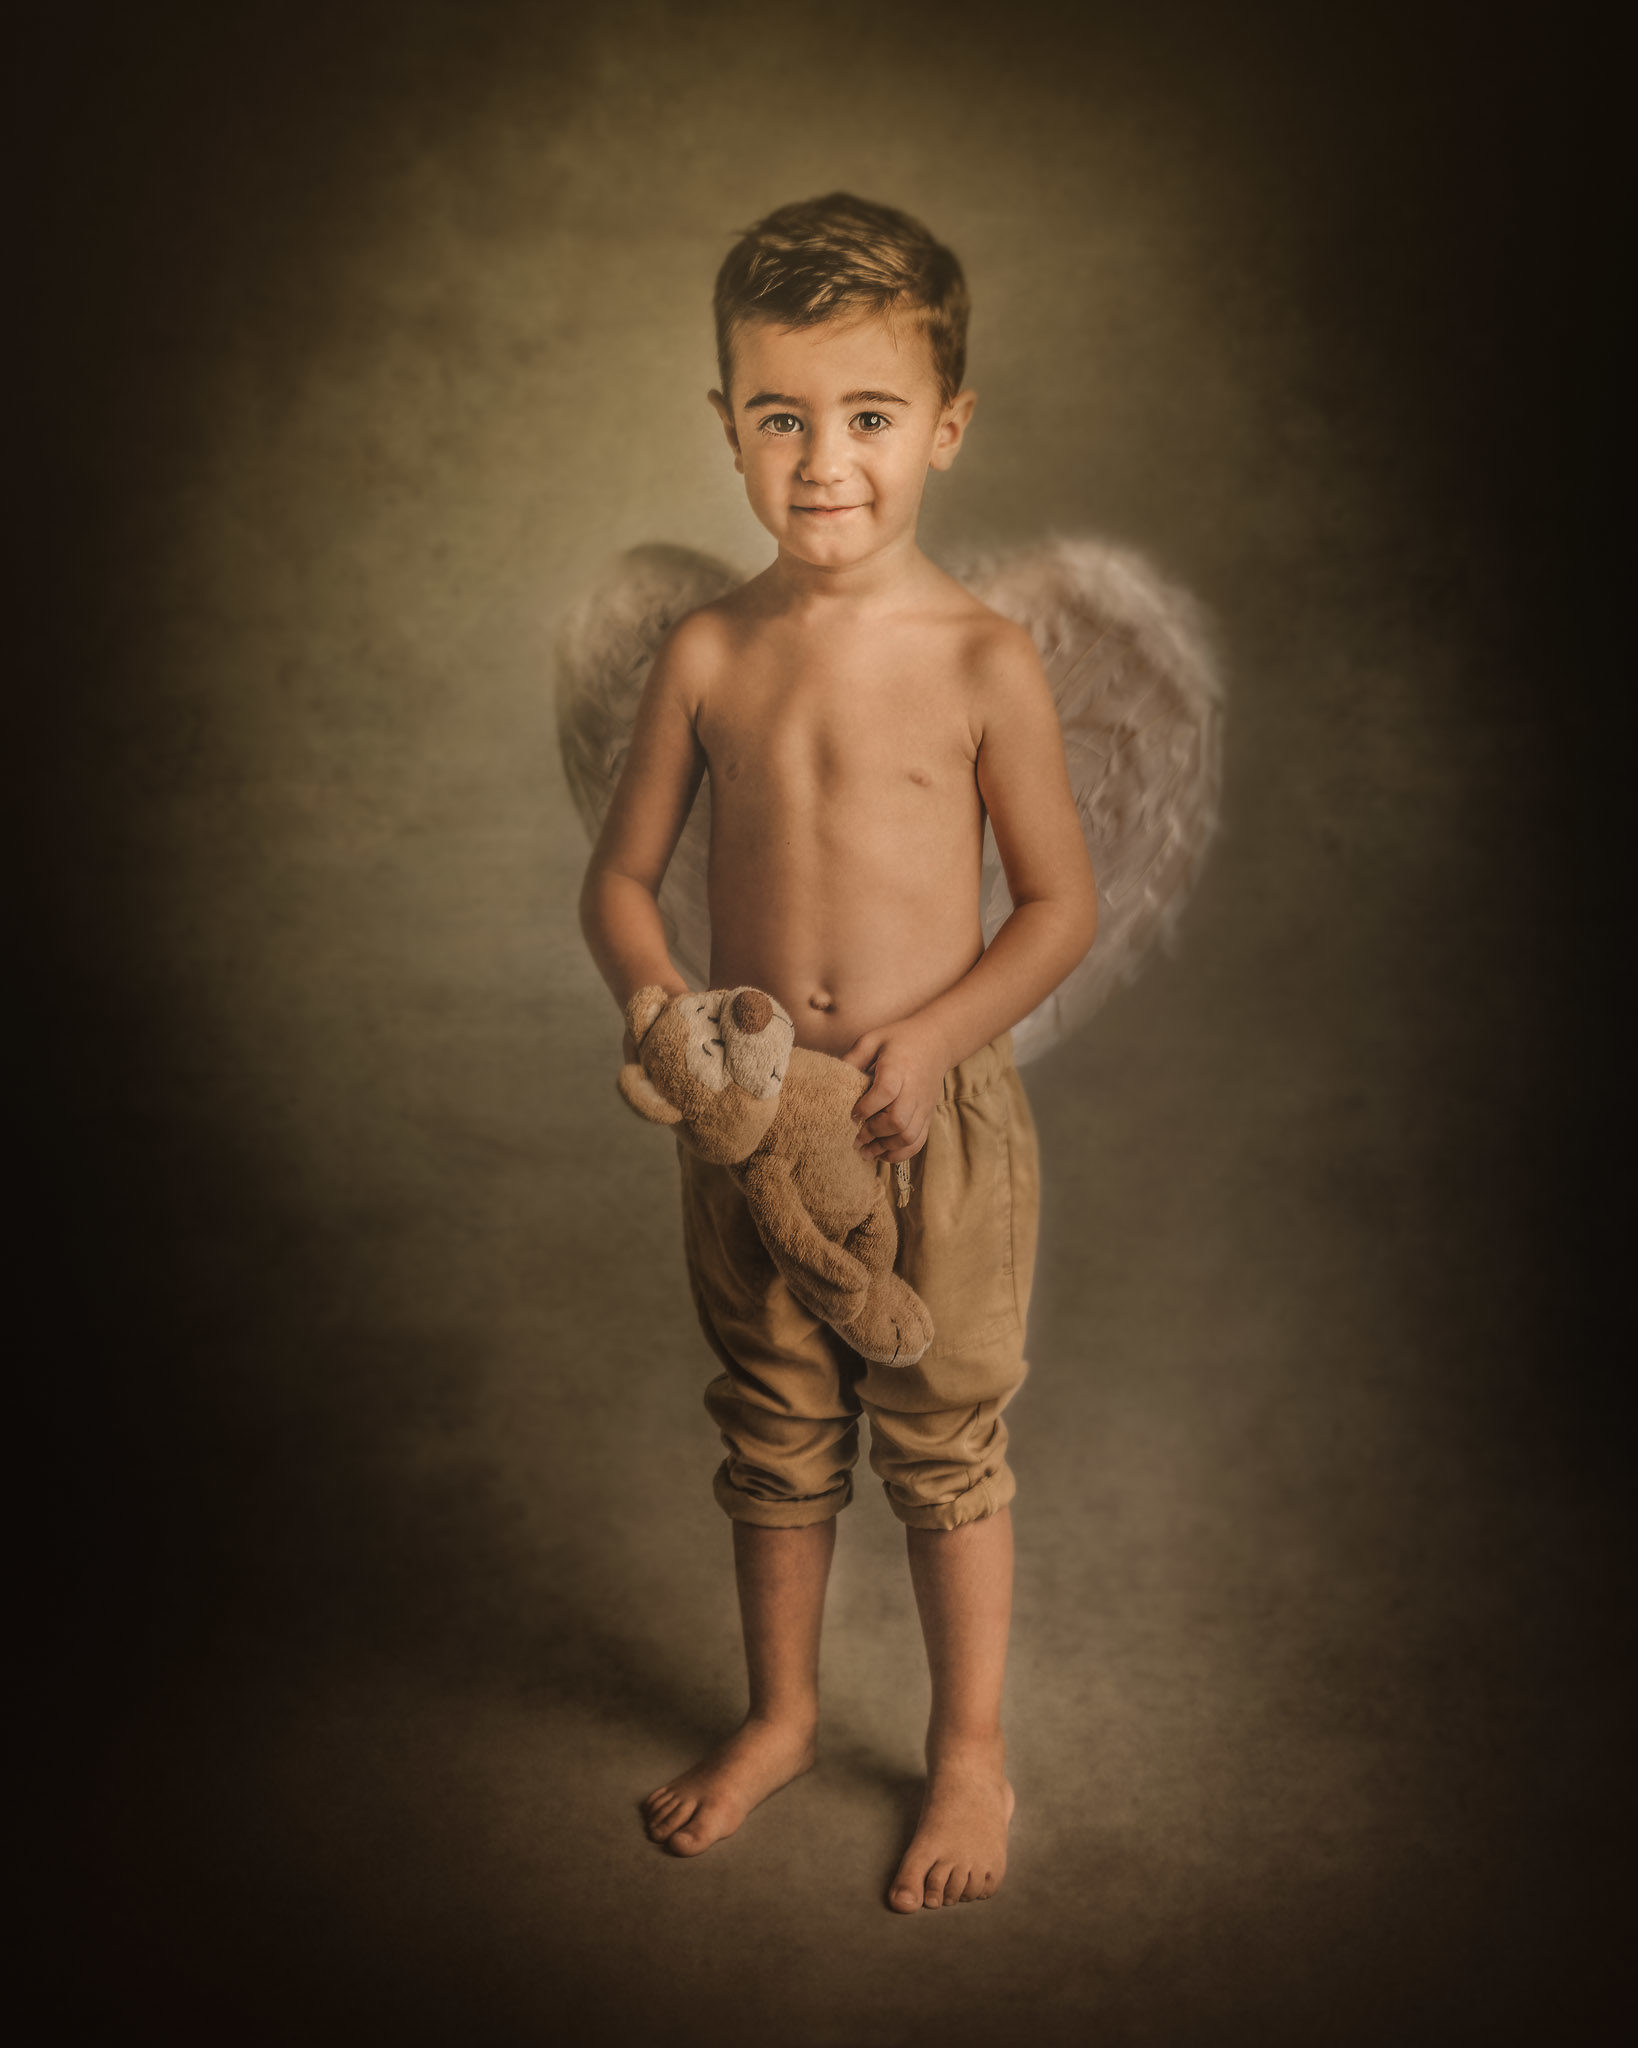 HUGO (3 AÑOS) – LITTLE ANGELS 2018